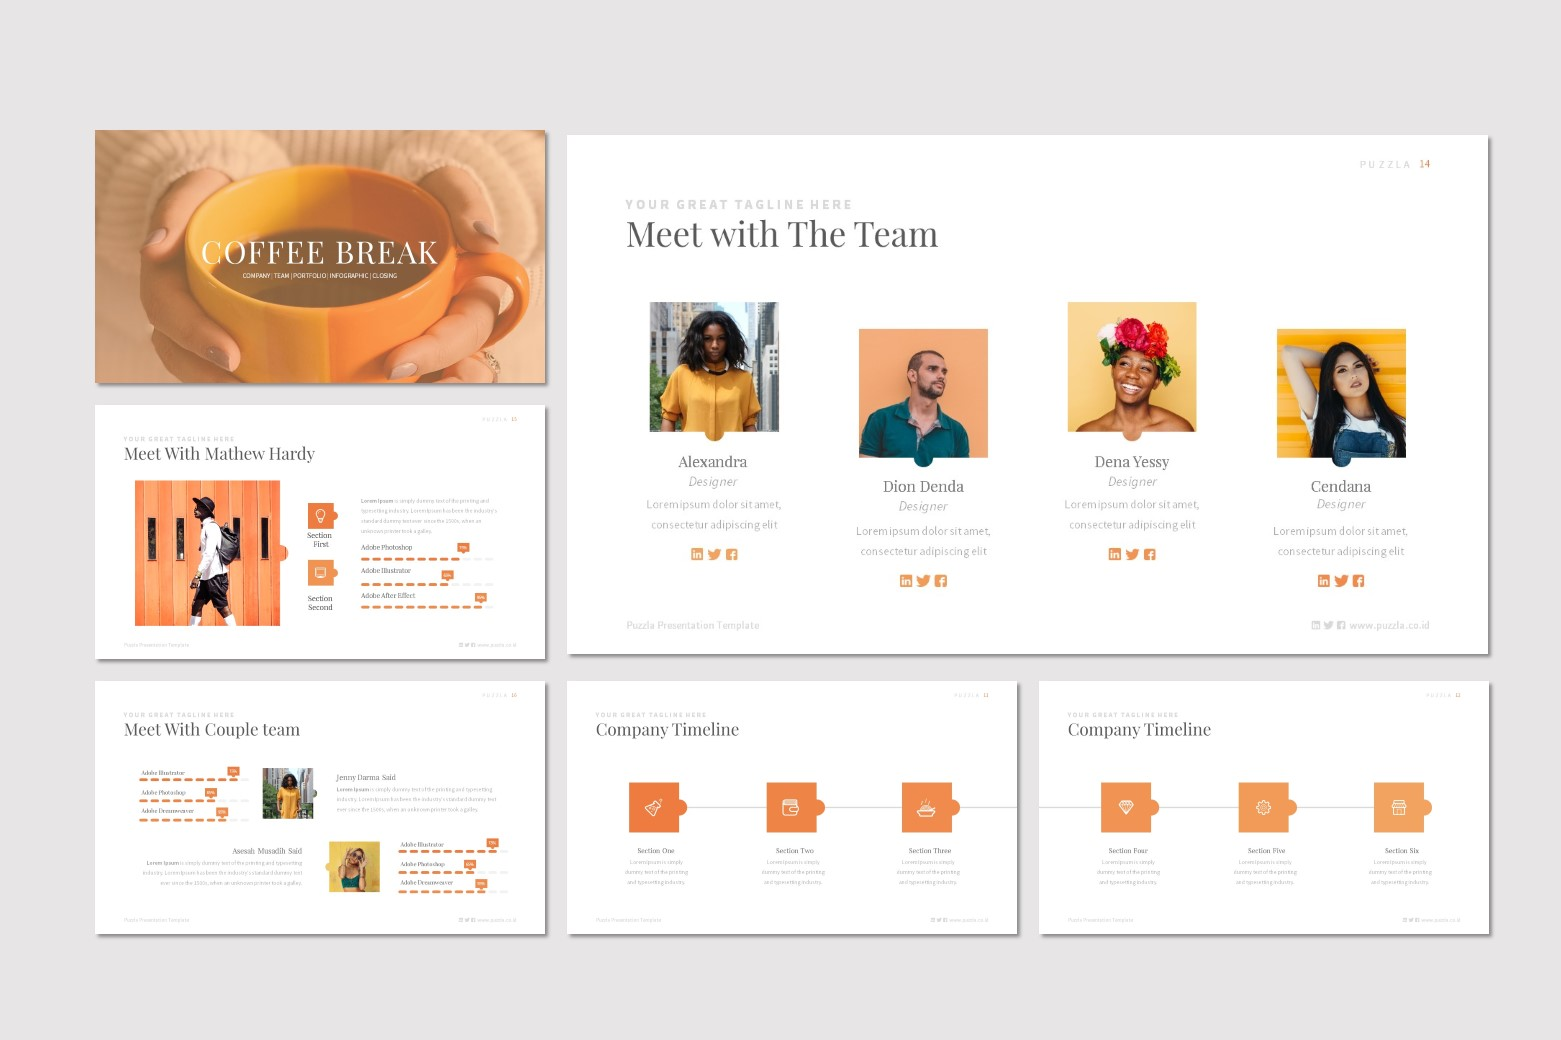 Puzzla powerpoint template pwtthemes. Com.